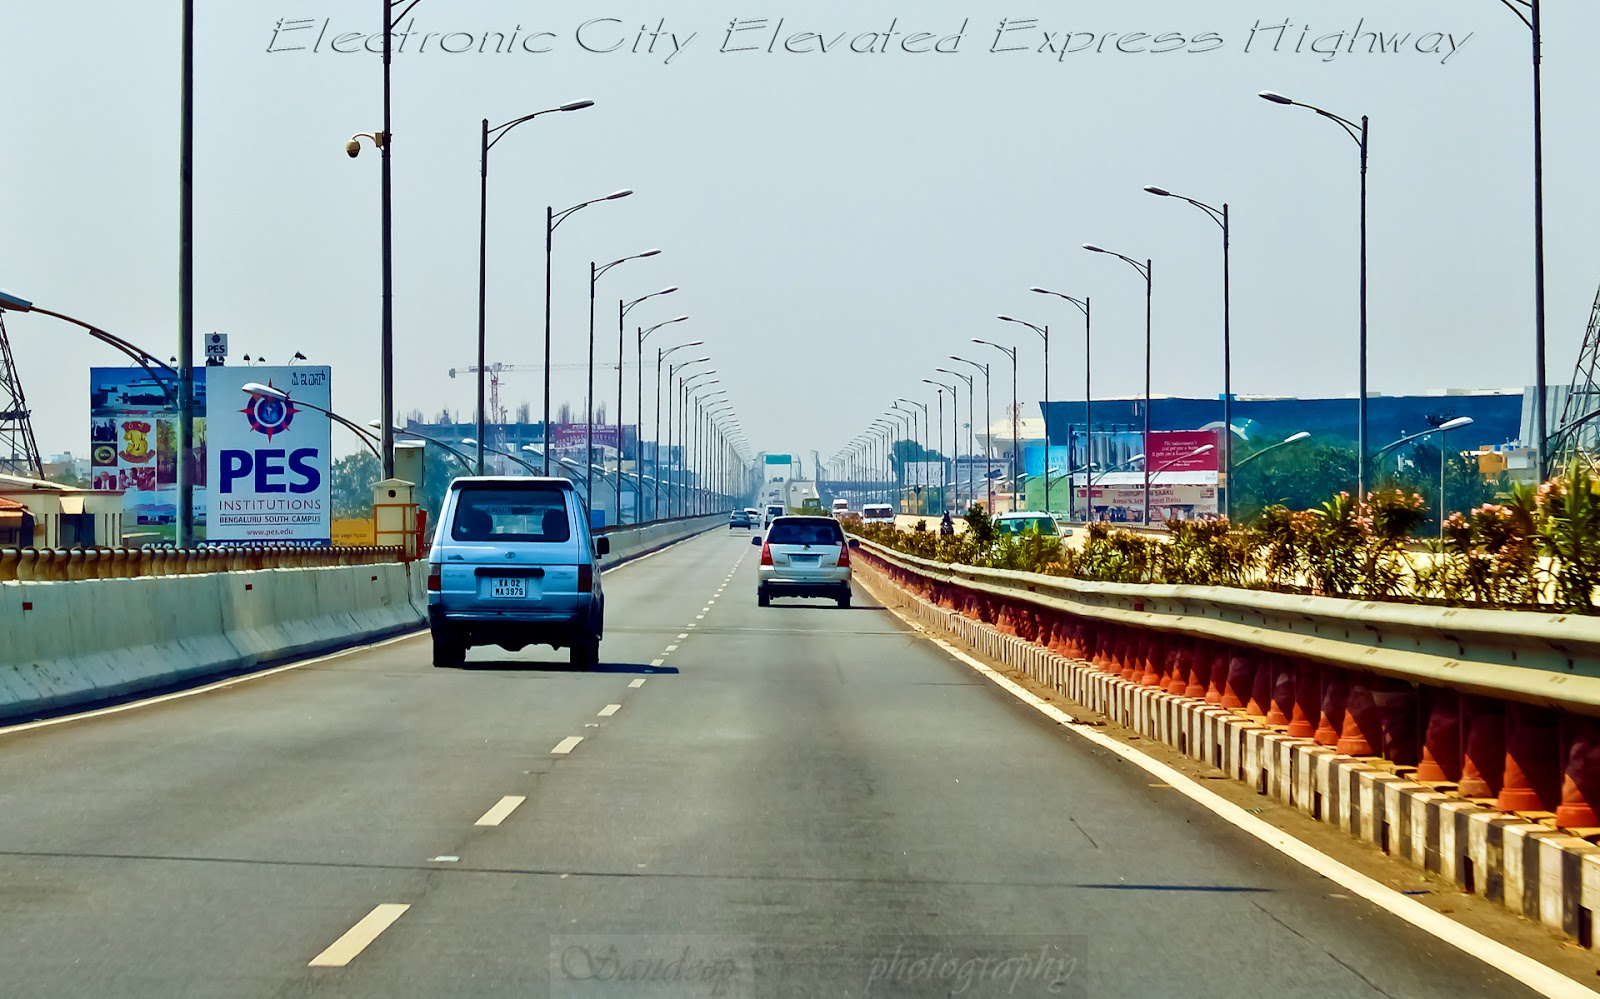 Electronics city Elevated express highway